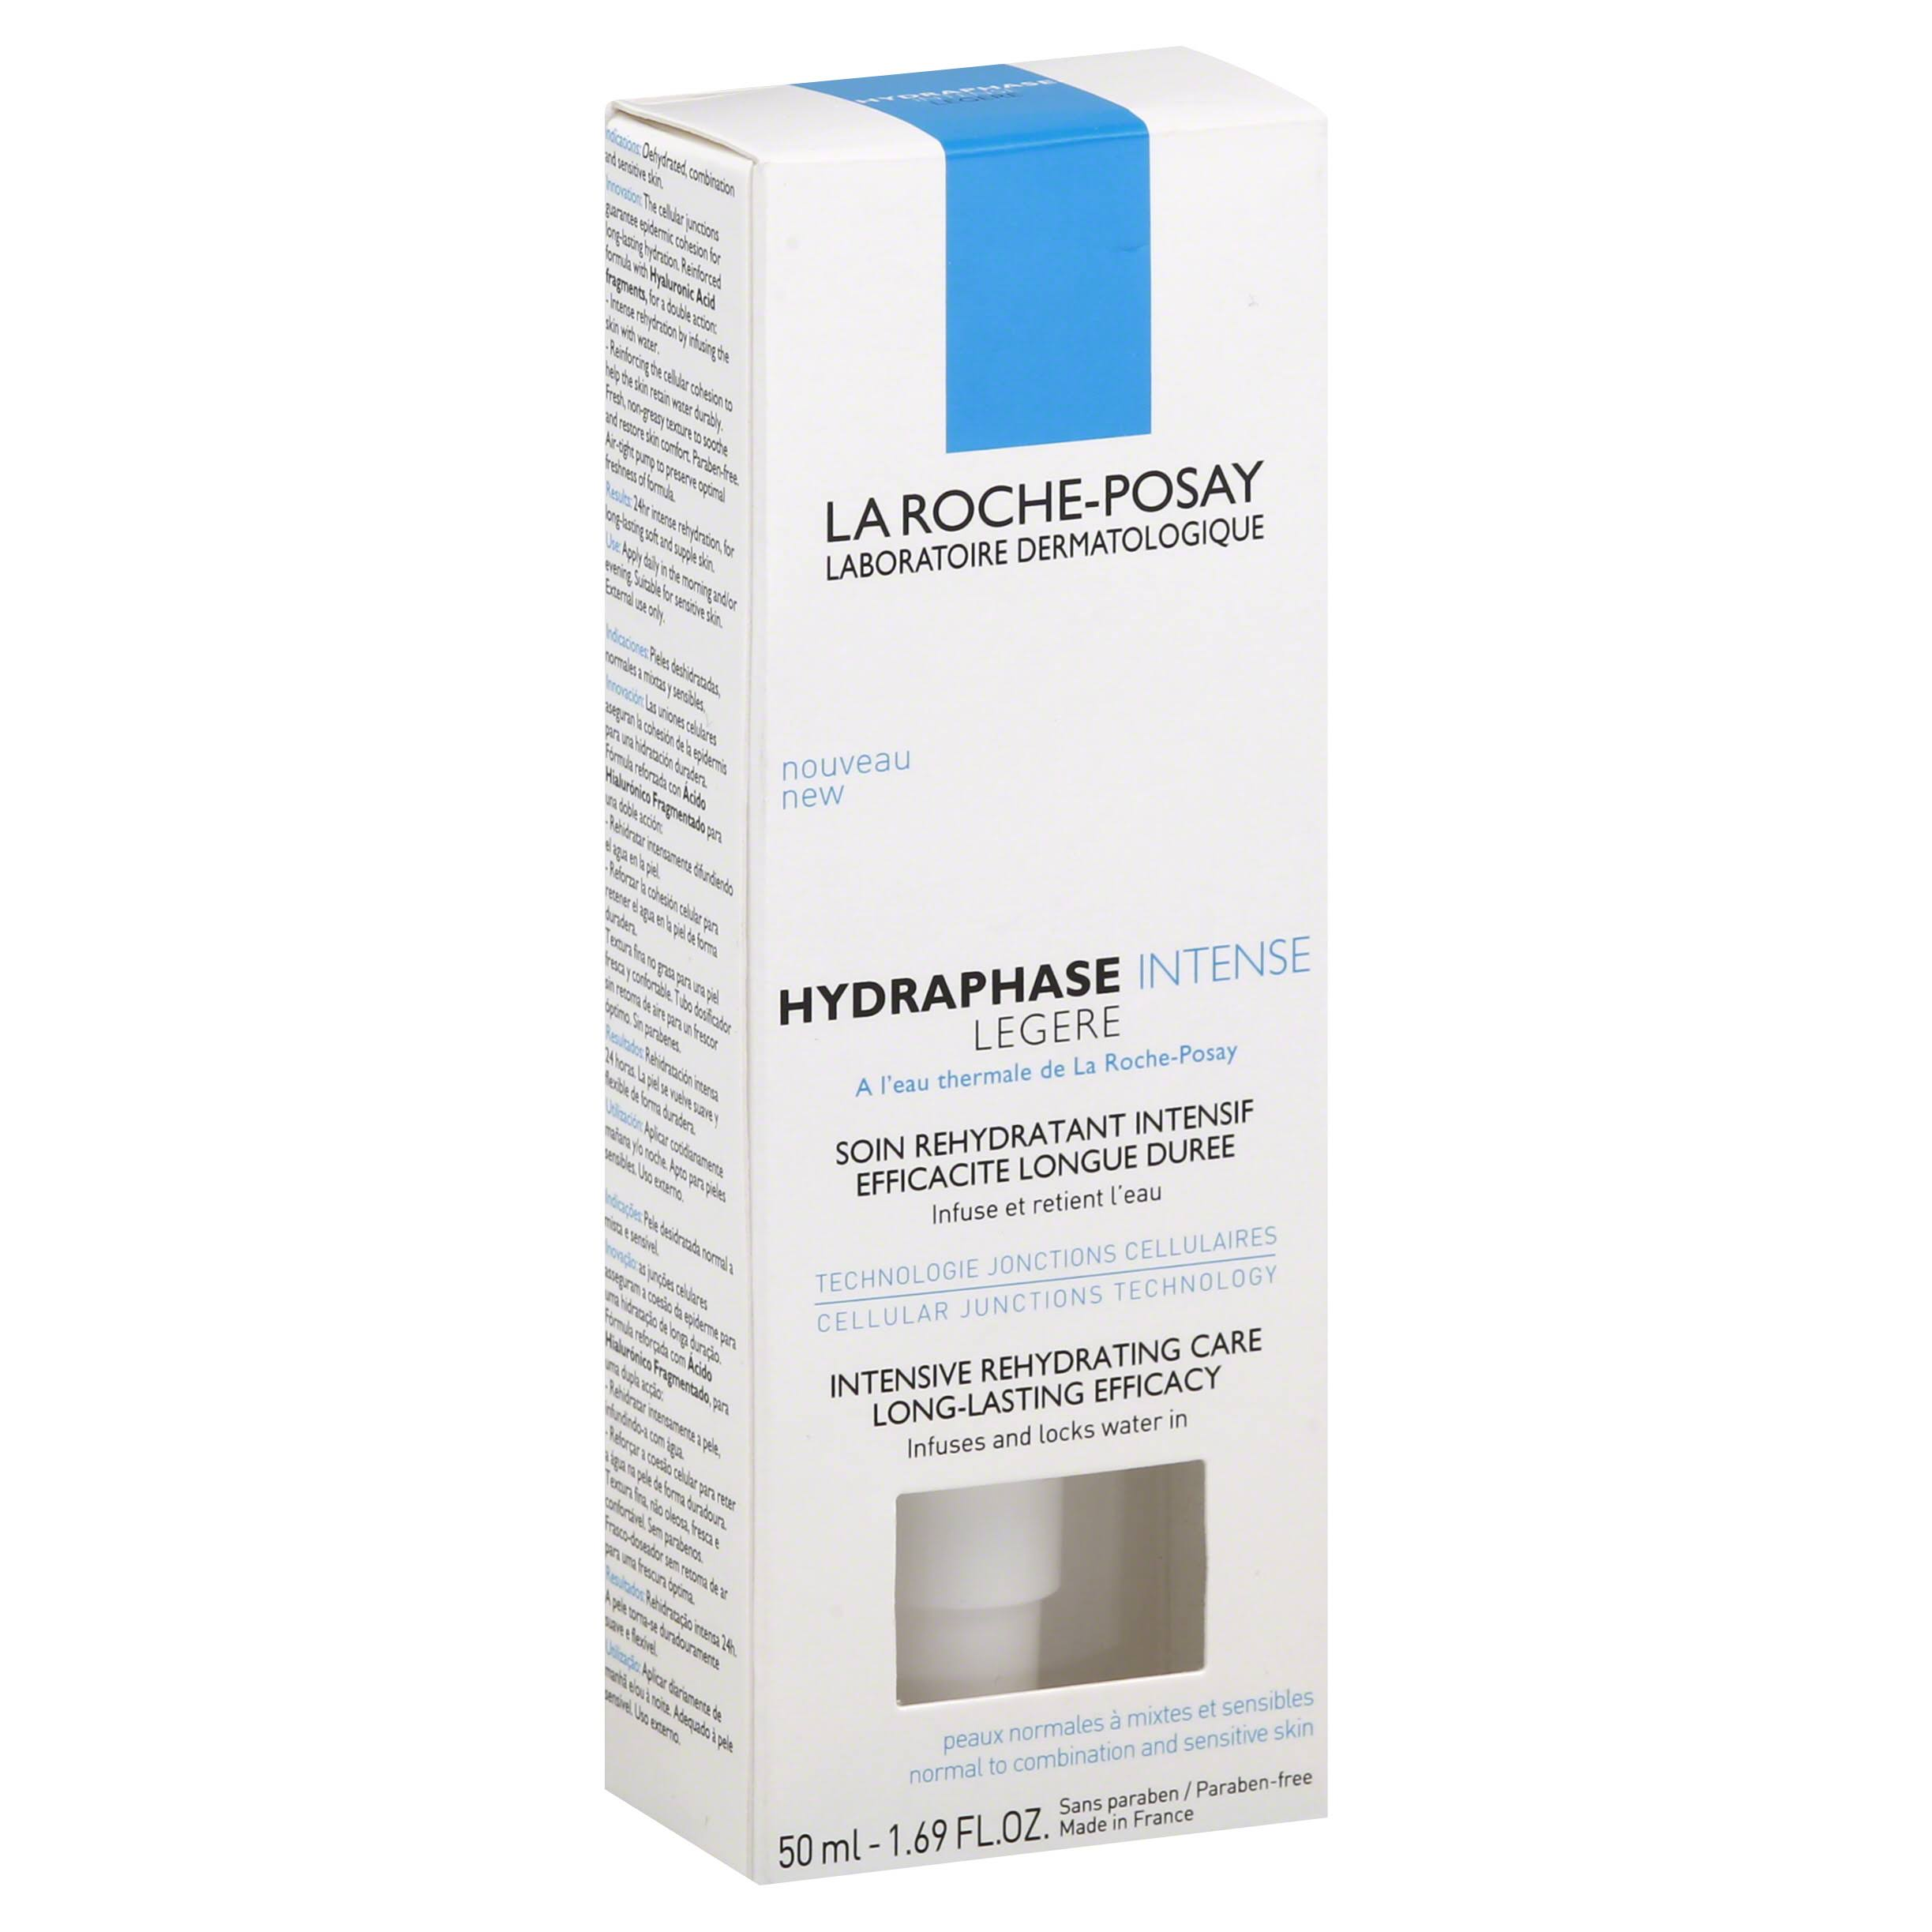 La Roche Posay Hydraphase Intensive Legere Rehydrating Care Moisturizer - 50ml